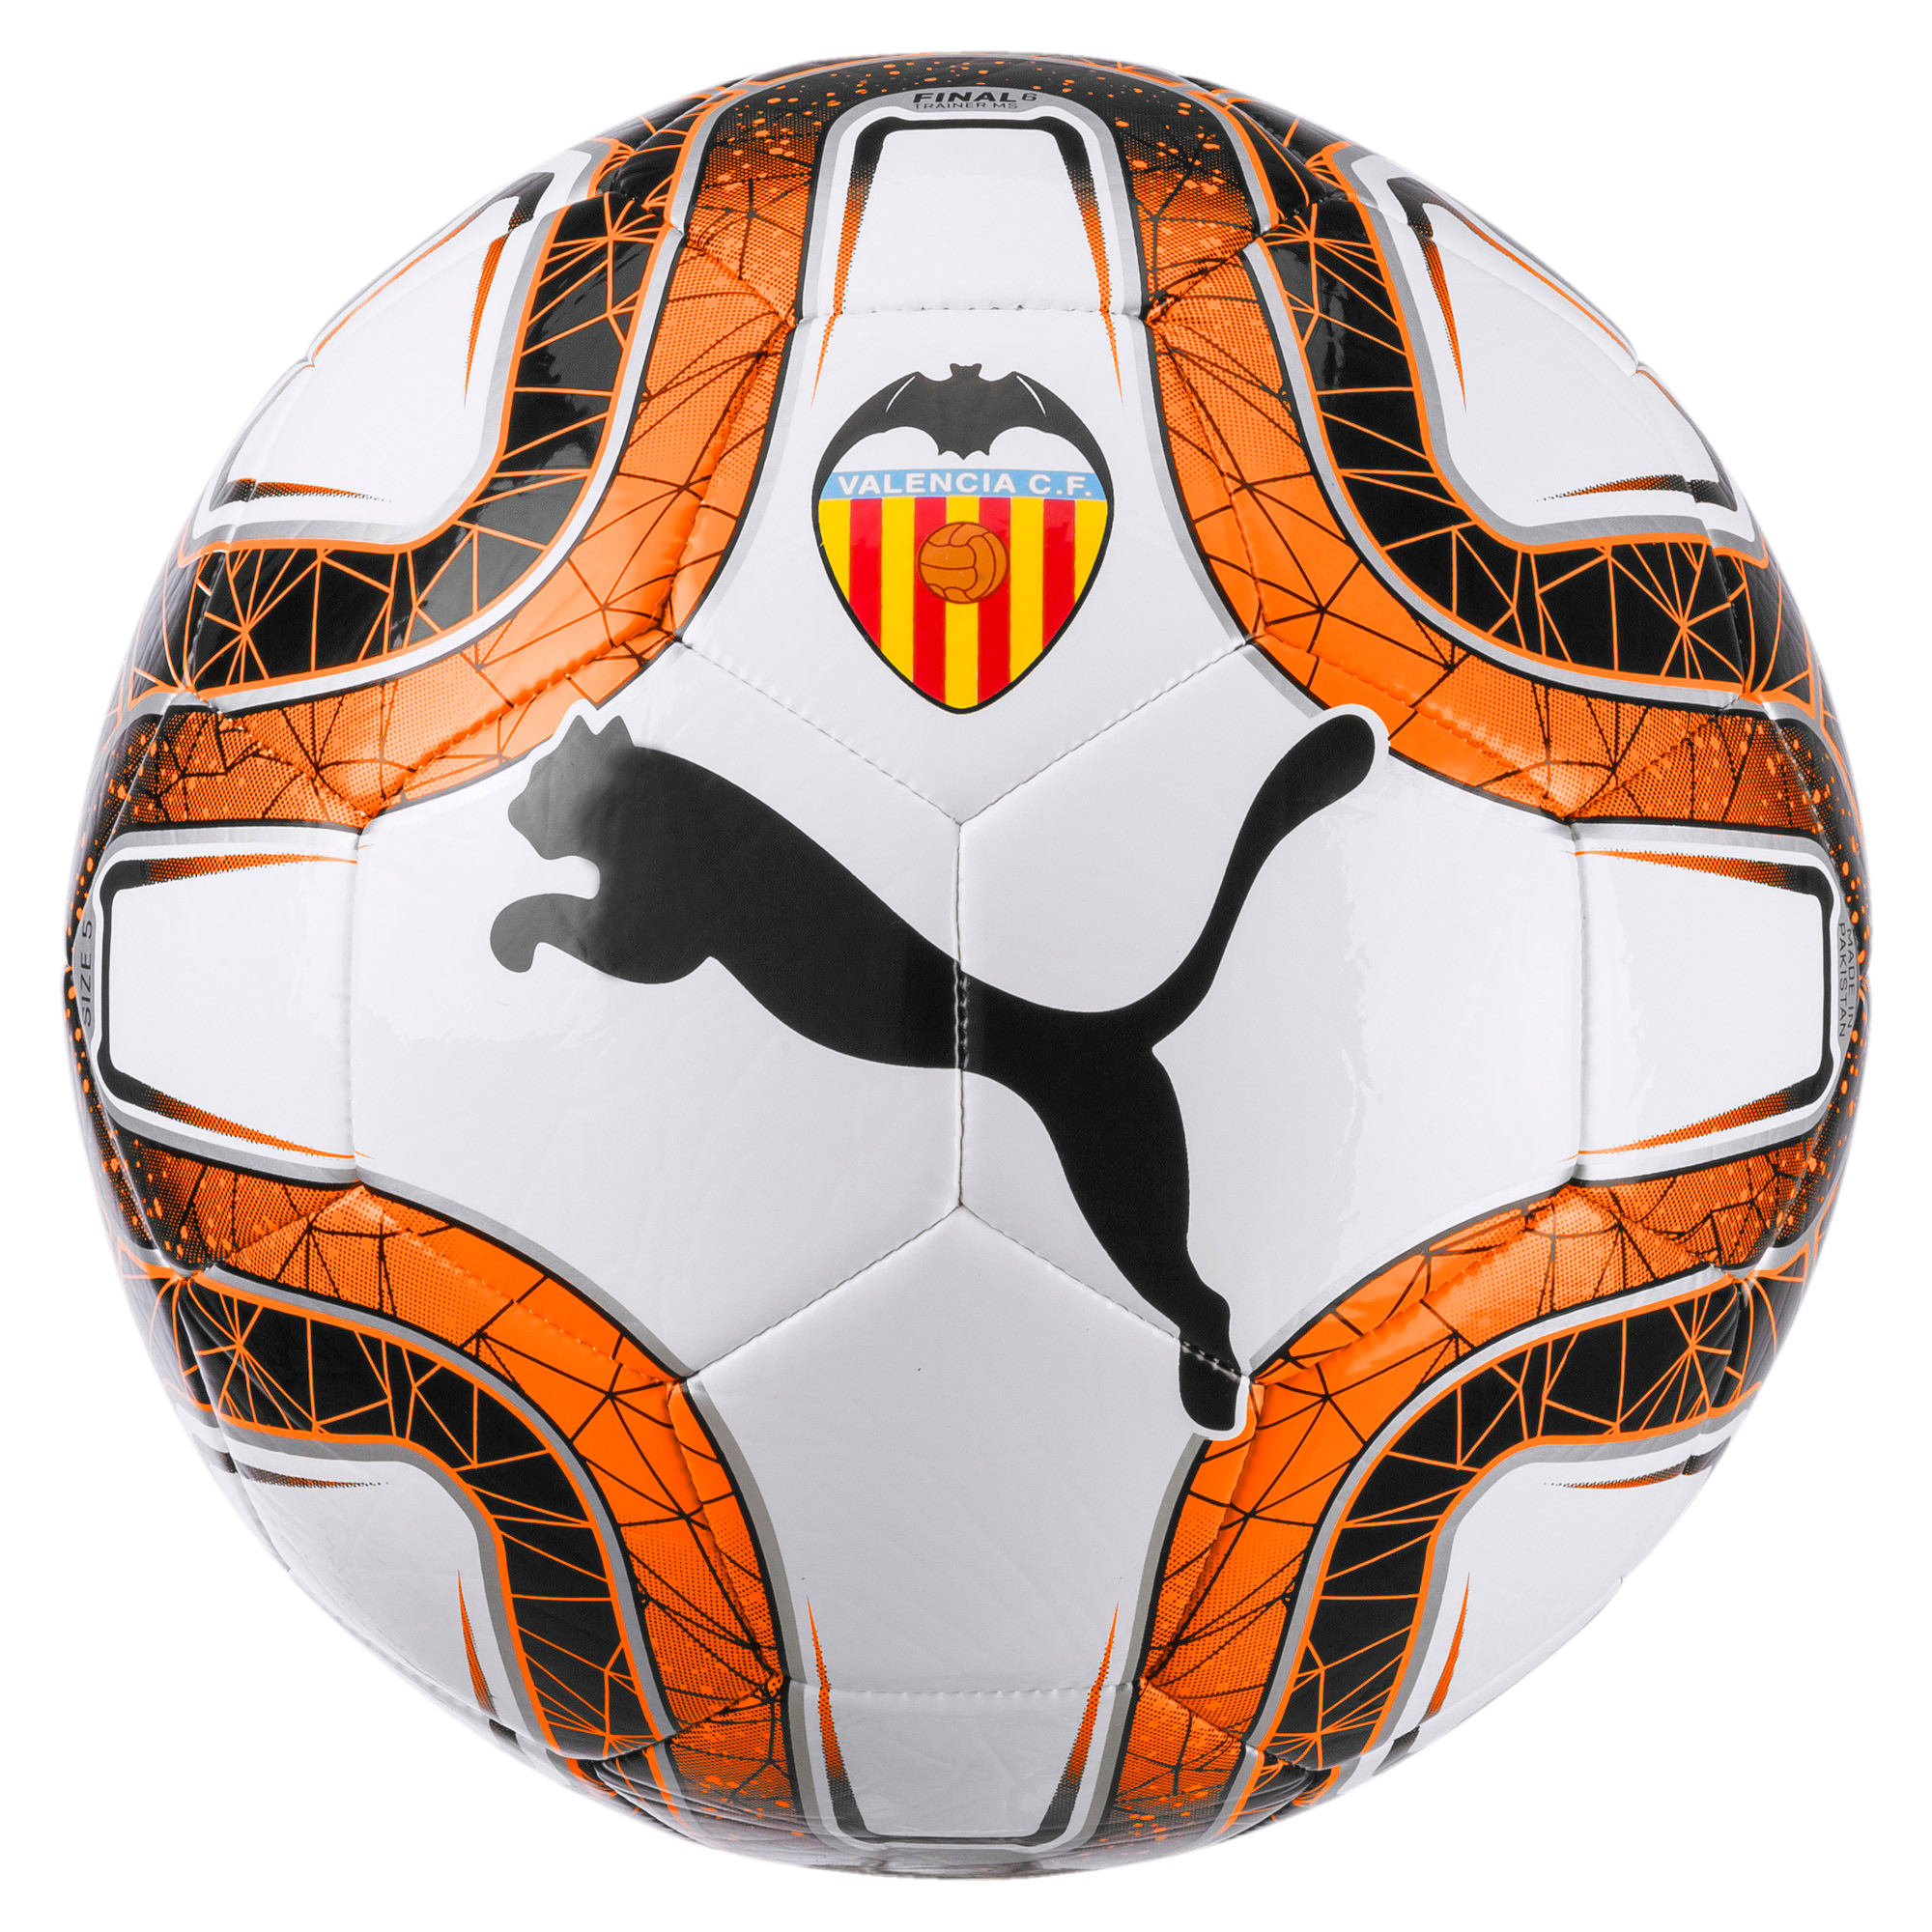 Thumbnail 1 of Valencia CF FINAL 6 Ball, Puma White-Puma Black, medium